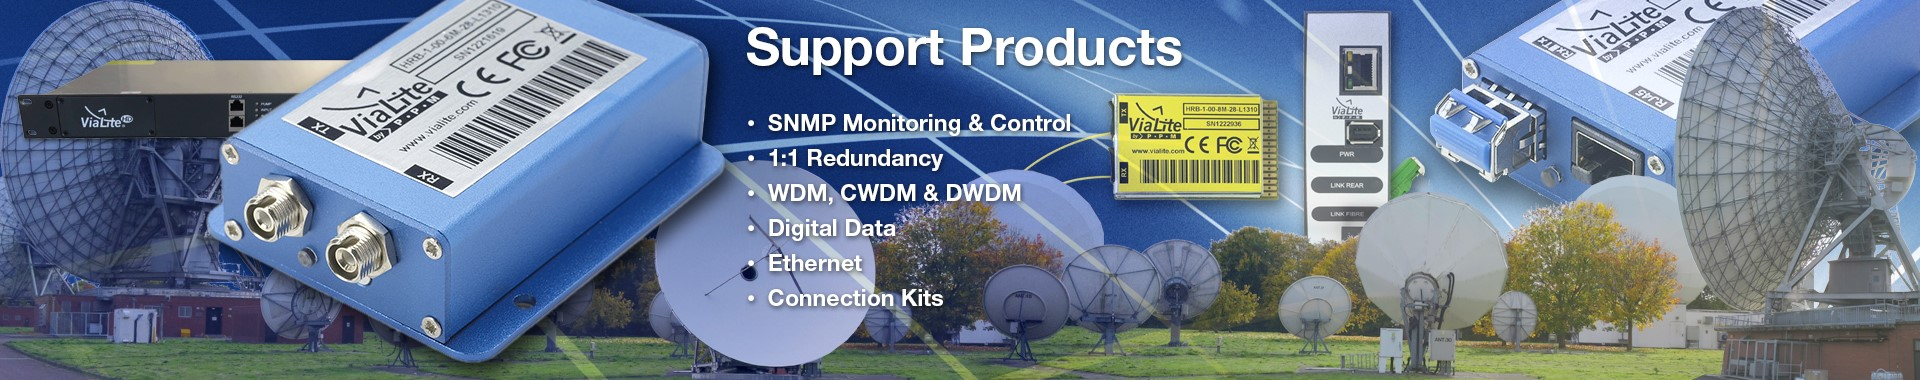 RF over fiber support products: SNMP M&C, 1:1 Redundancy...